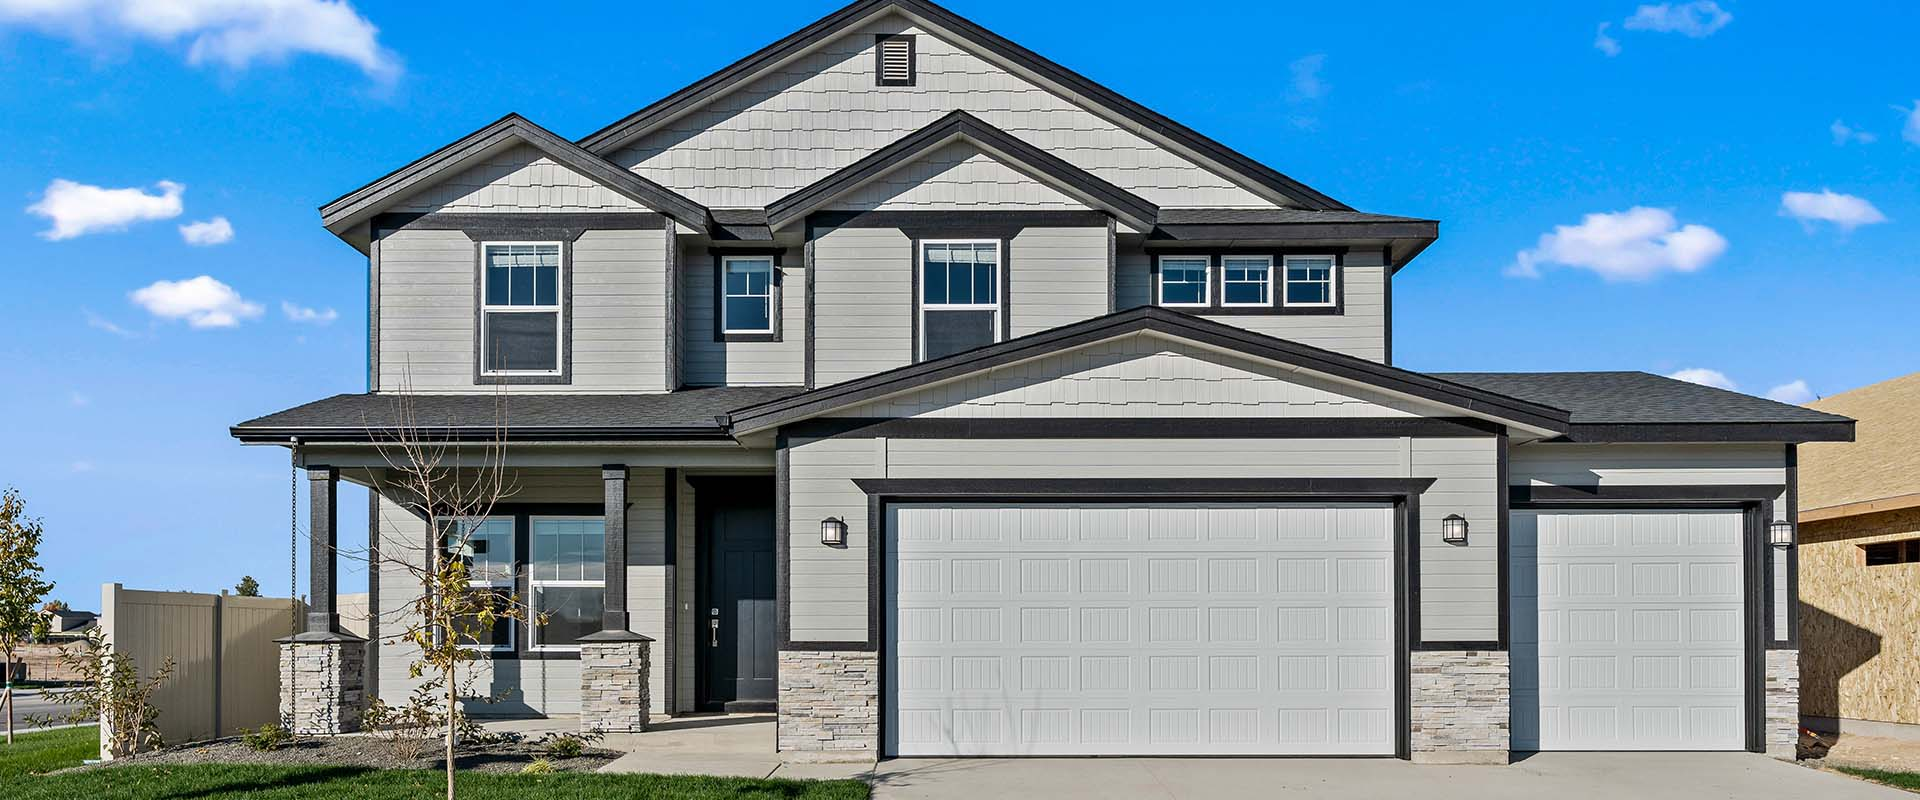 Greyhawk-New-Homes-Huble Homes-Kuna-Idaho-01_0000_Winchester - Greyhawk 2717 N Ridgecreek Ave-1 copy.jpg